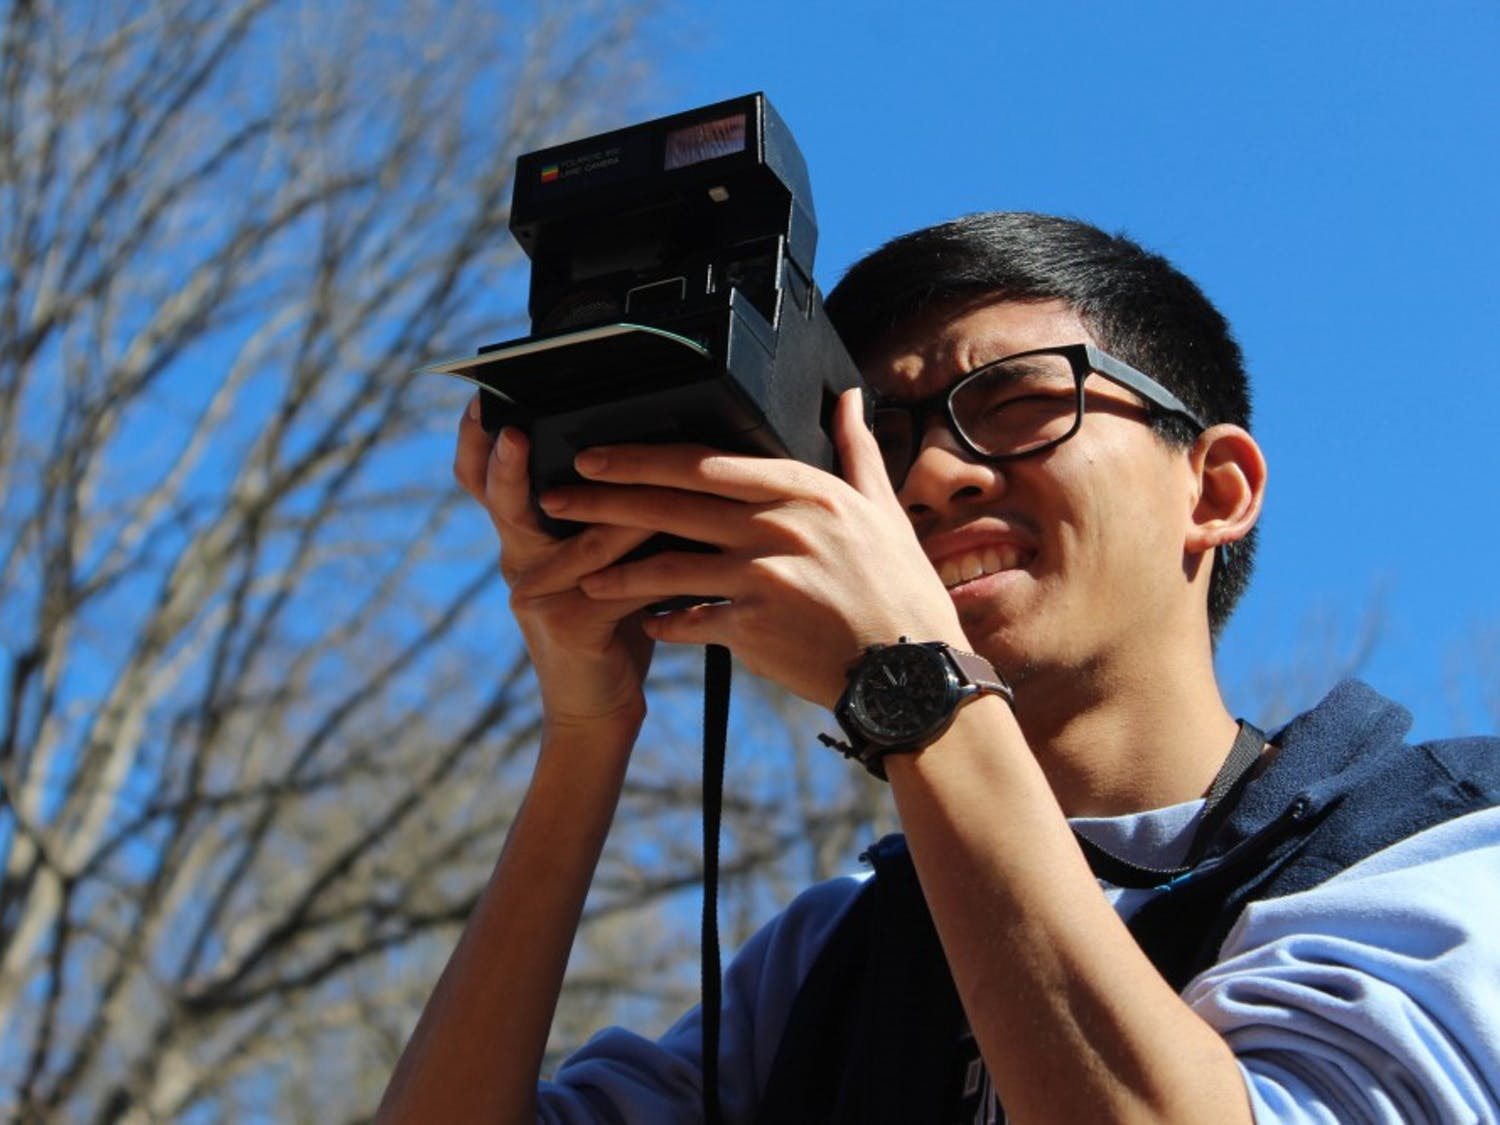 """Lucky Prachith, senior business major, uses his Polaroid camera at South Building on Tuesday, March 26, 2019. Prachith likes taking photos with his Polaroid camera because """"it's a medium that's different in the sense that at the end of the day you get a tangible thing, it has a realness that separates it from digital photography."""" Pracith has been shooting with his Polaroid since his senior year of high school."""